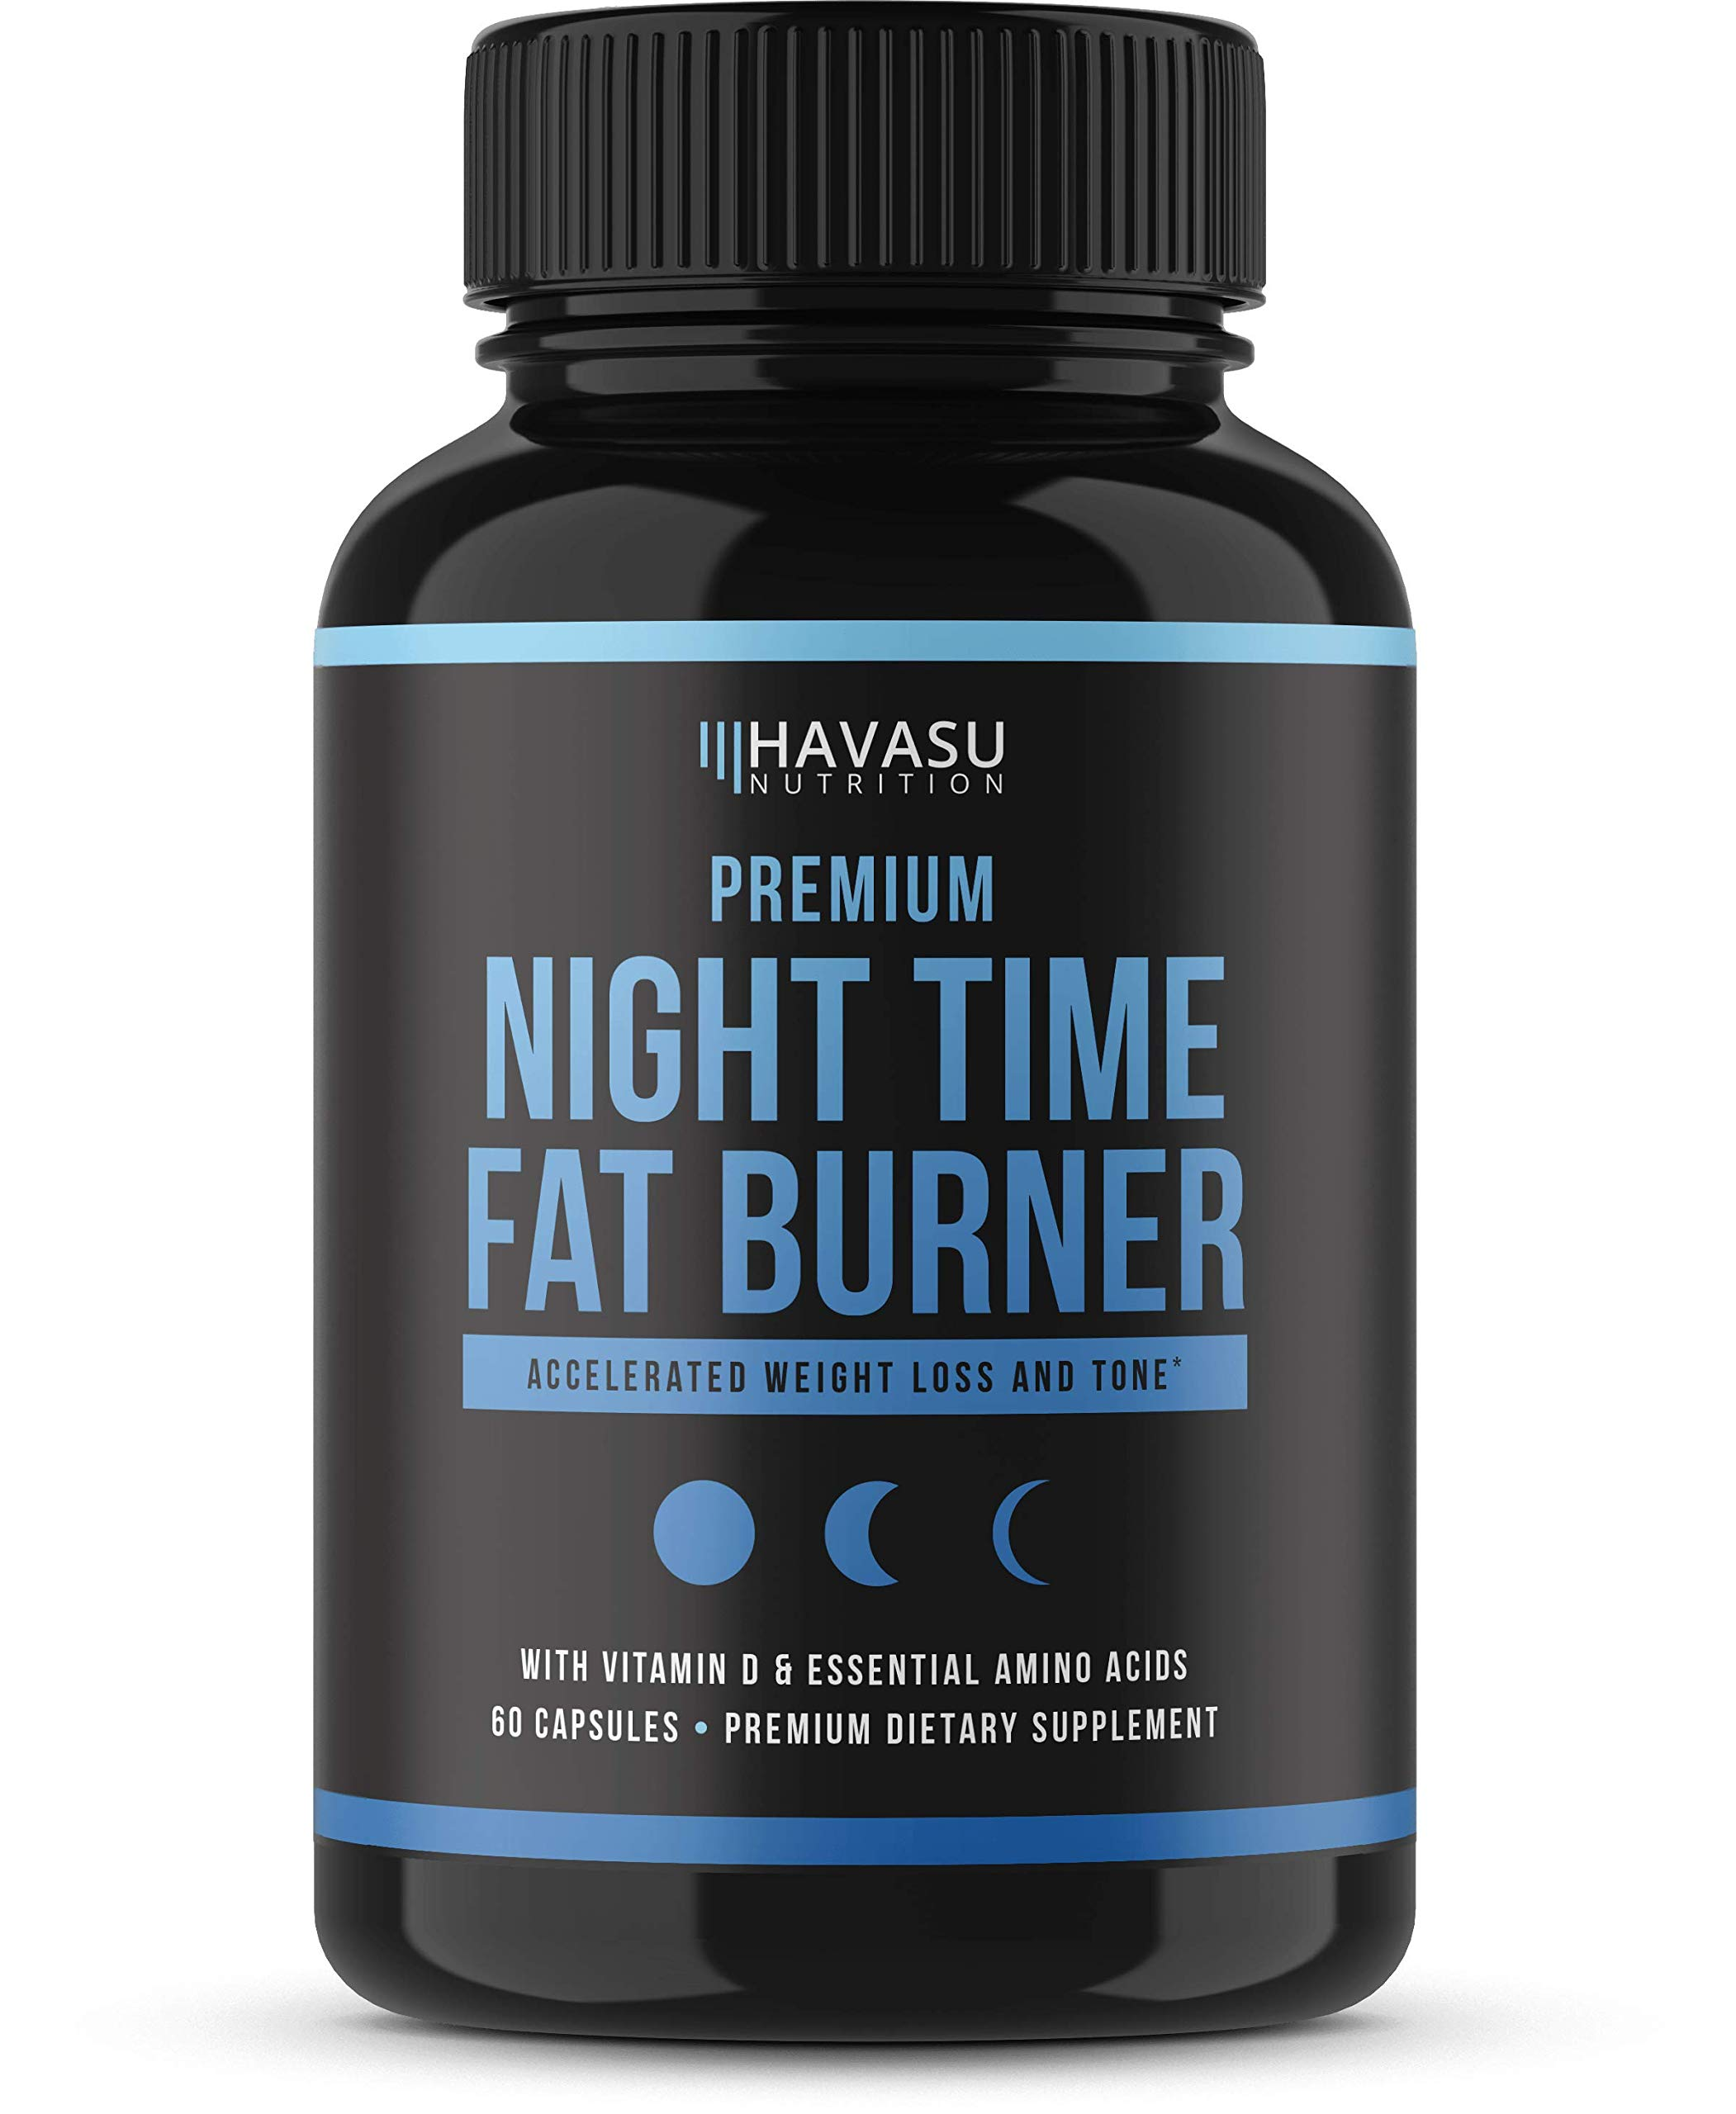 Havasu Nutrition Premium Night Time Weight Loss Pills with Vitamin D, Green Coffee Bean Extract, White Kidney Bean Extract, L-Tryptophan, Melatonin- Non Habit Forming PM Fat Burner, 60 Capsules by Havasu Nutrition